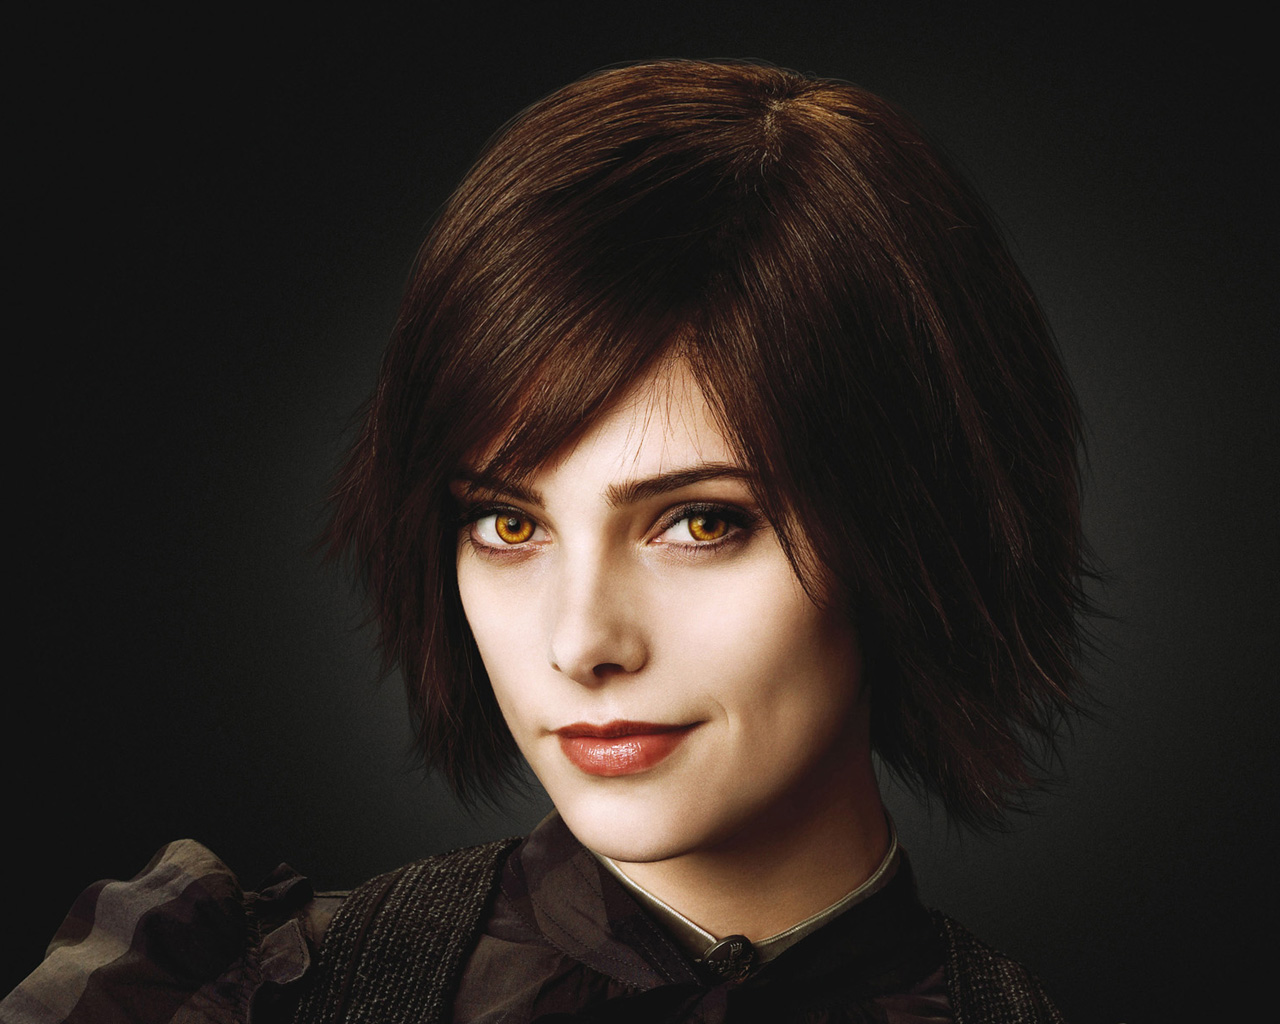 Who is alice dating in twilight